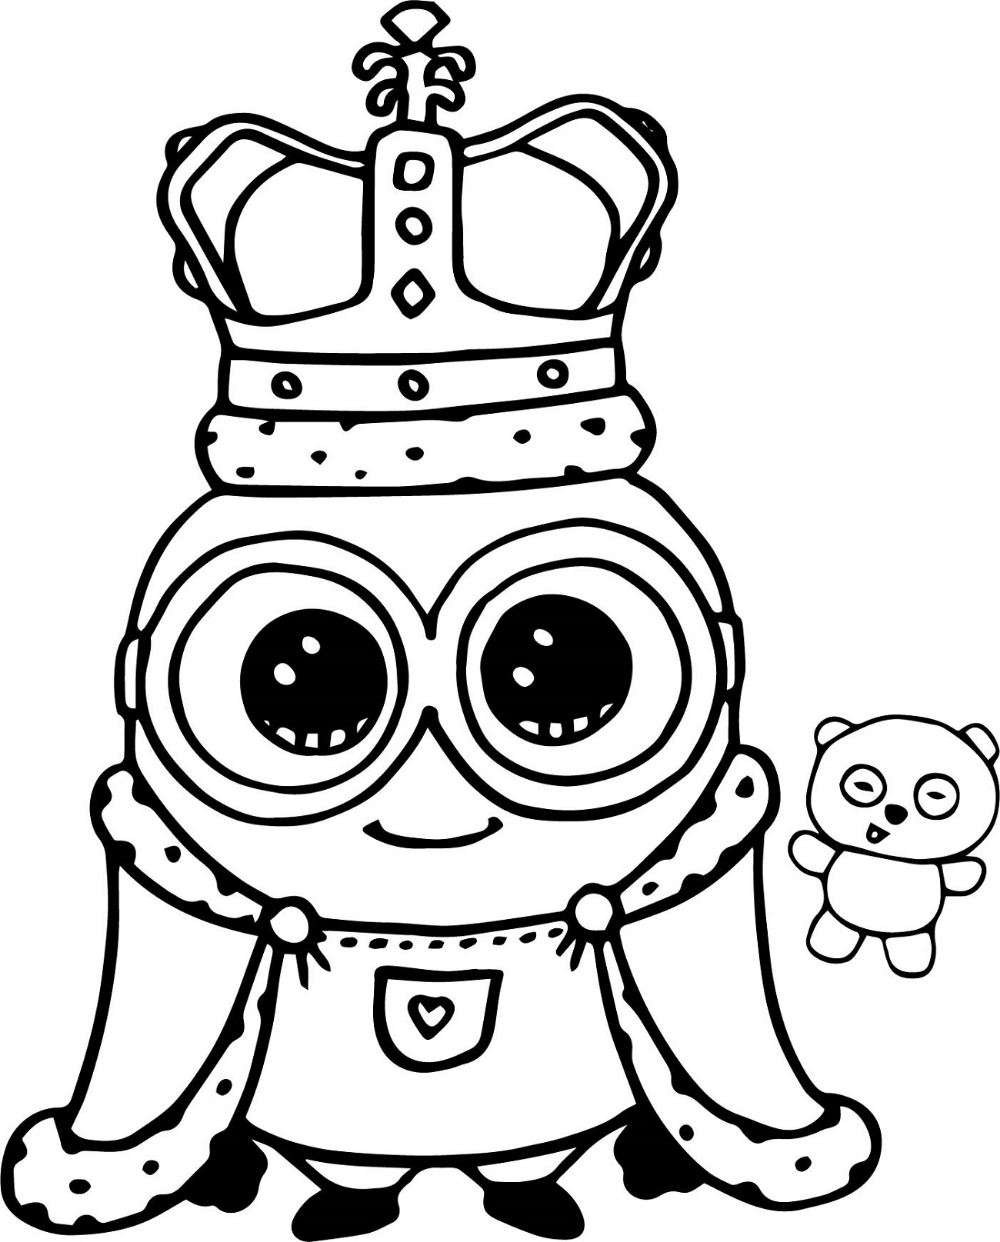 Minion King Coloring Pages For Kids K5 Worksheets Minions Coloring Pages Minion Coloring Pages Halloween Coloring Pages